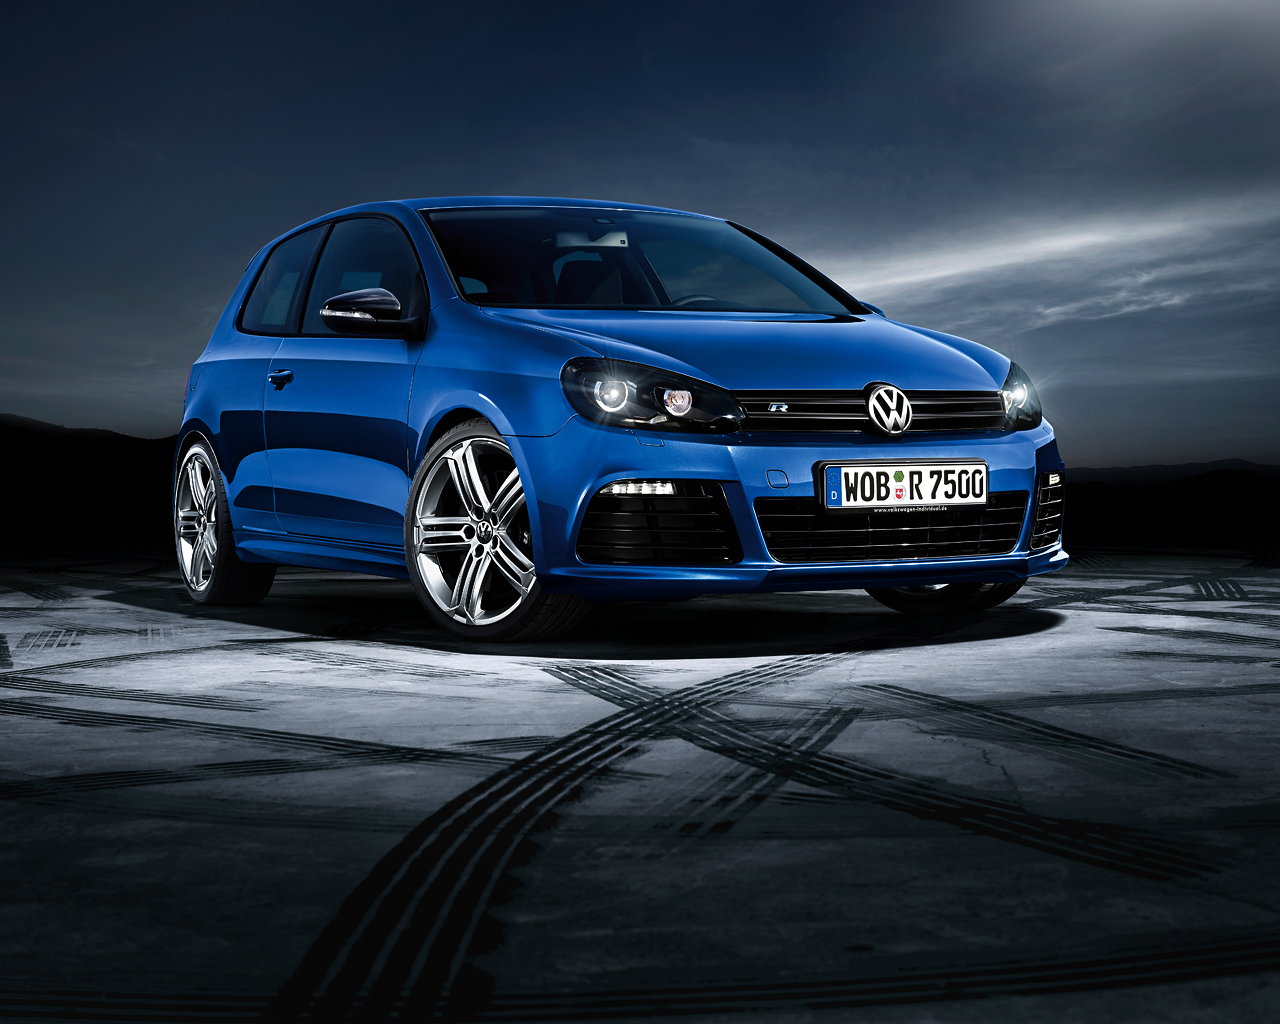 2012 Golf R Wallpaper Wallpapersafari